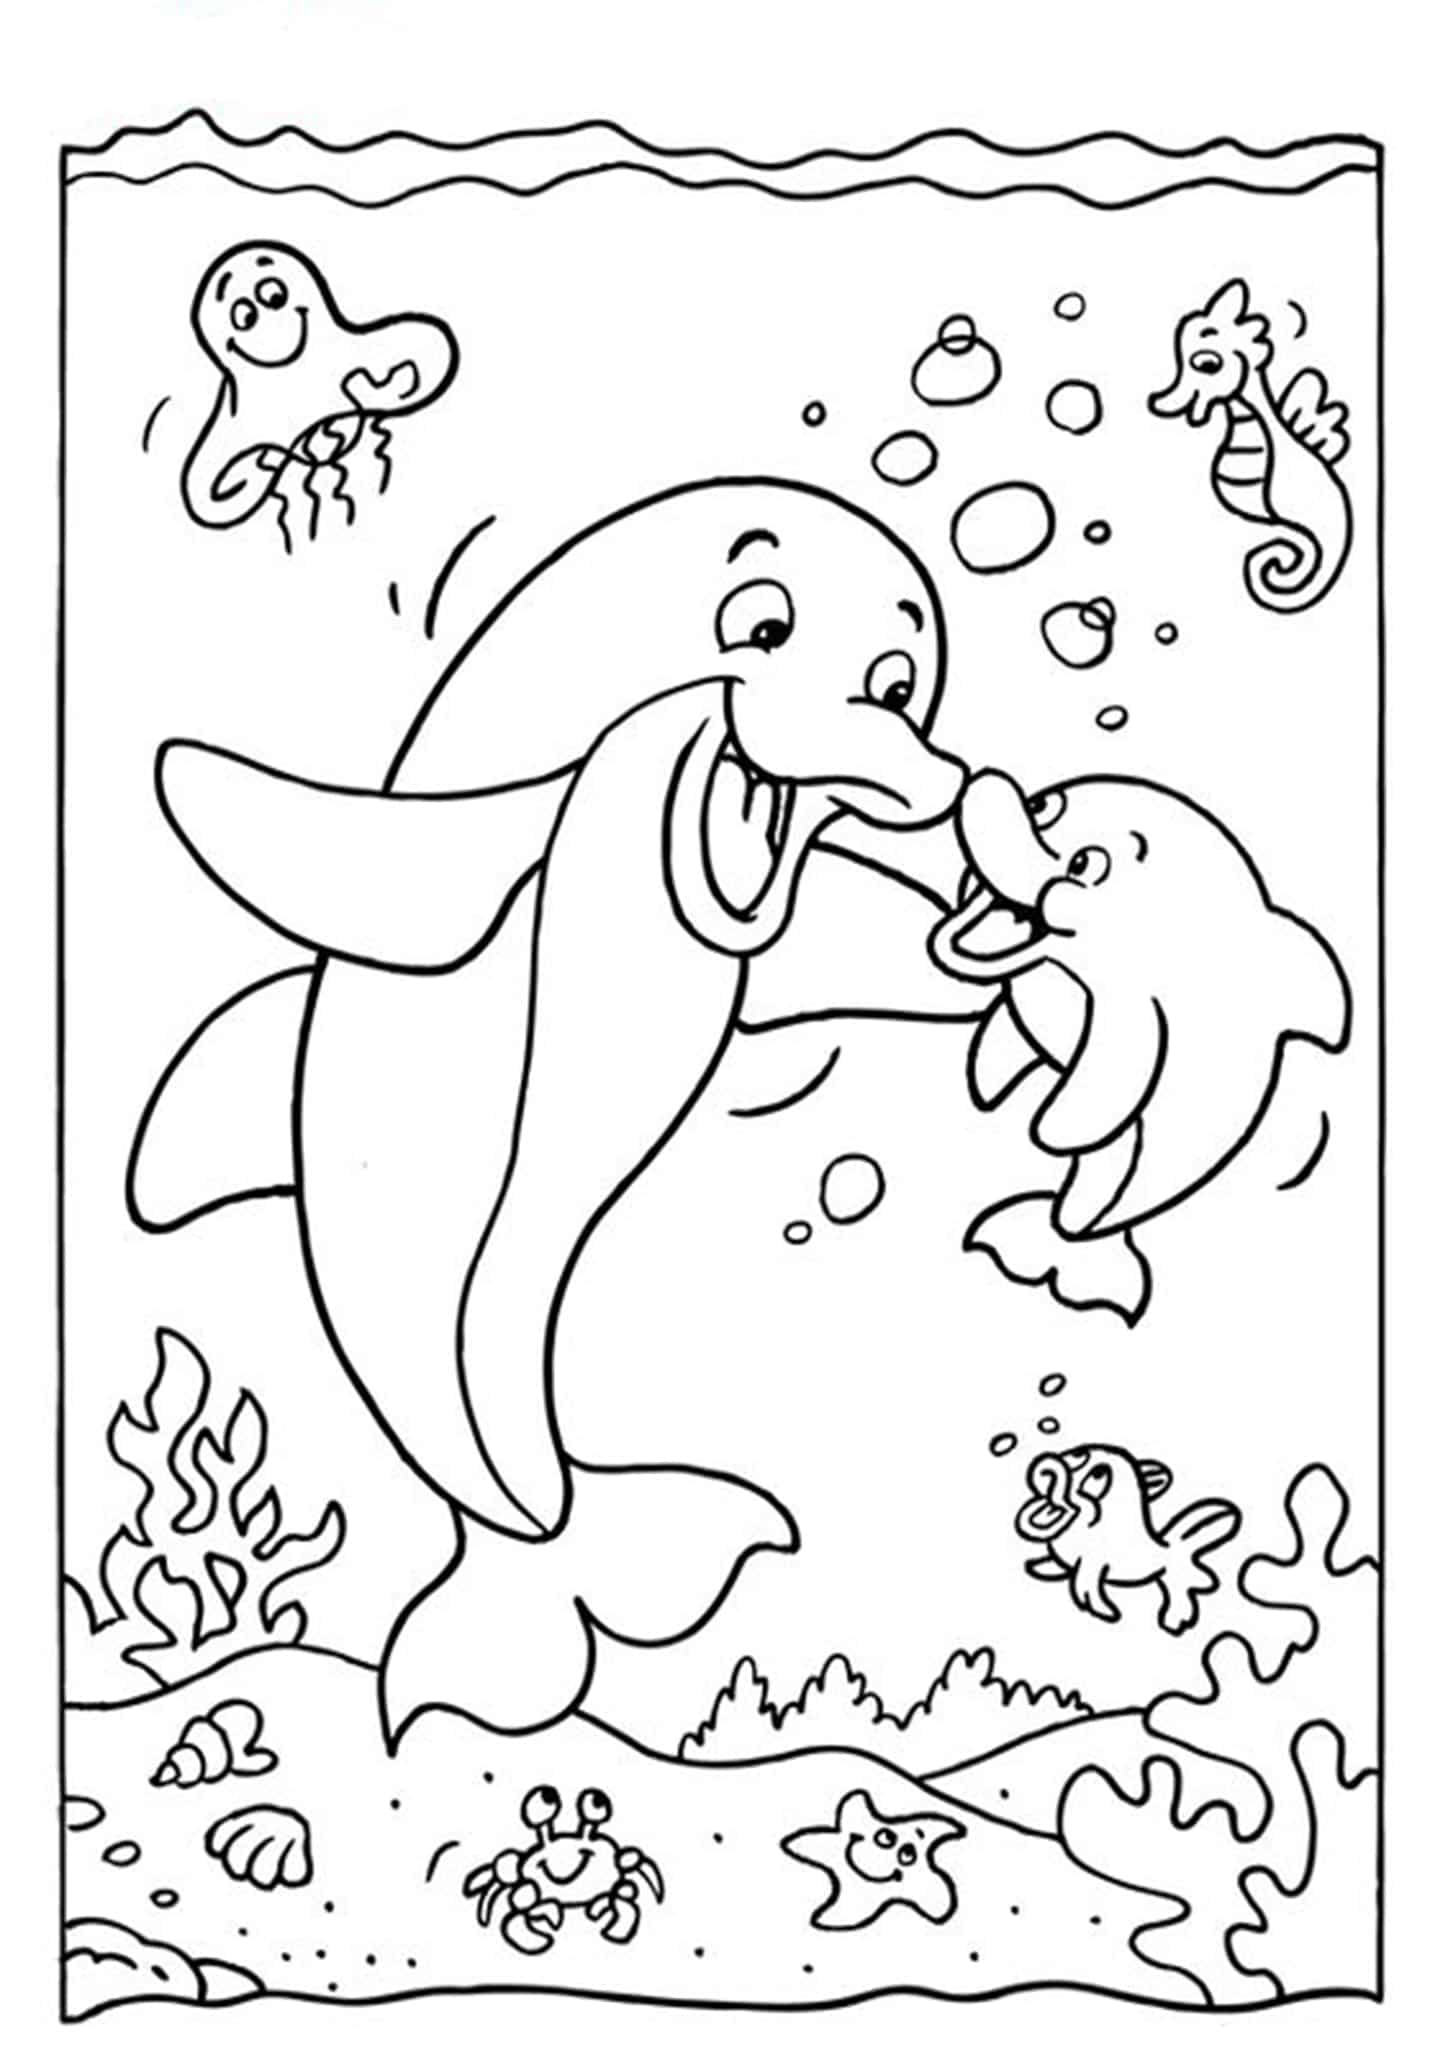 Free & Easy To Print Dolphin Coloring Pages - Tulamama